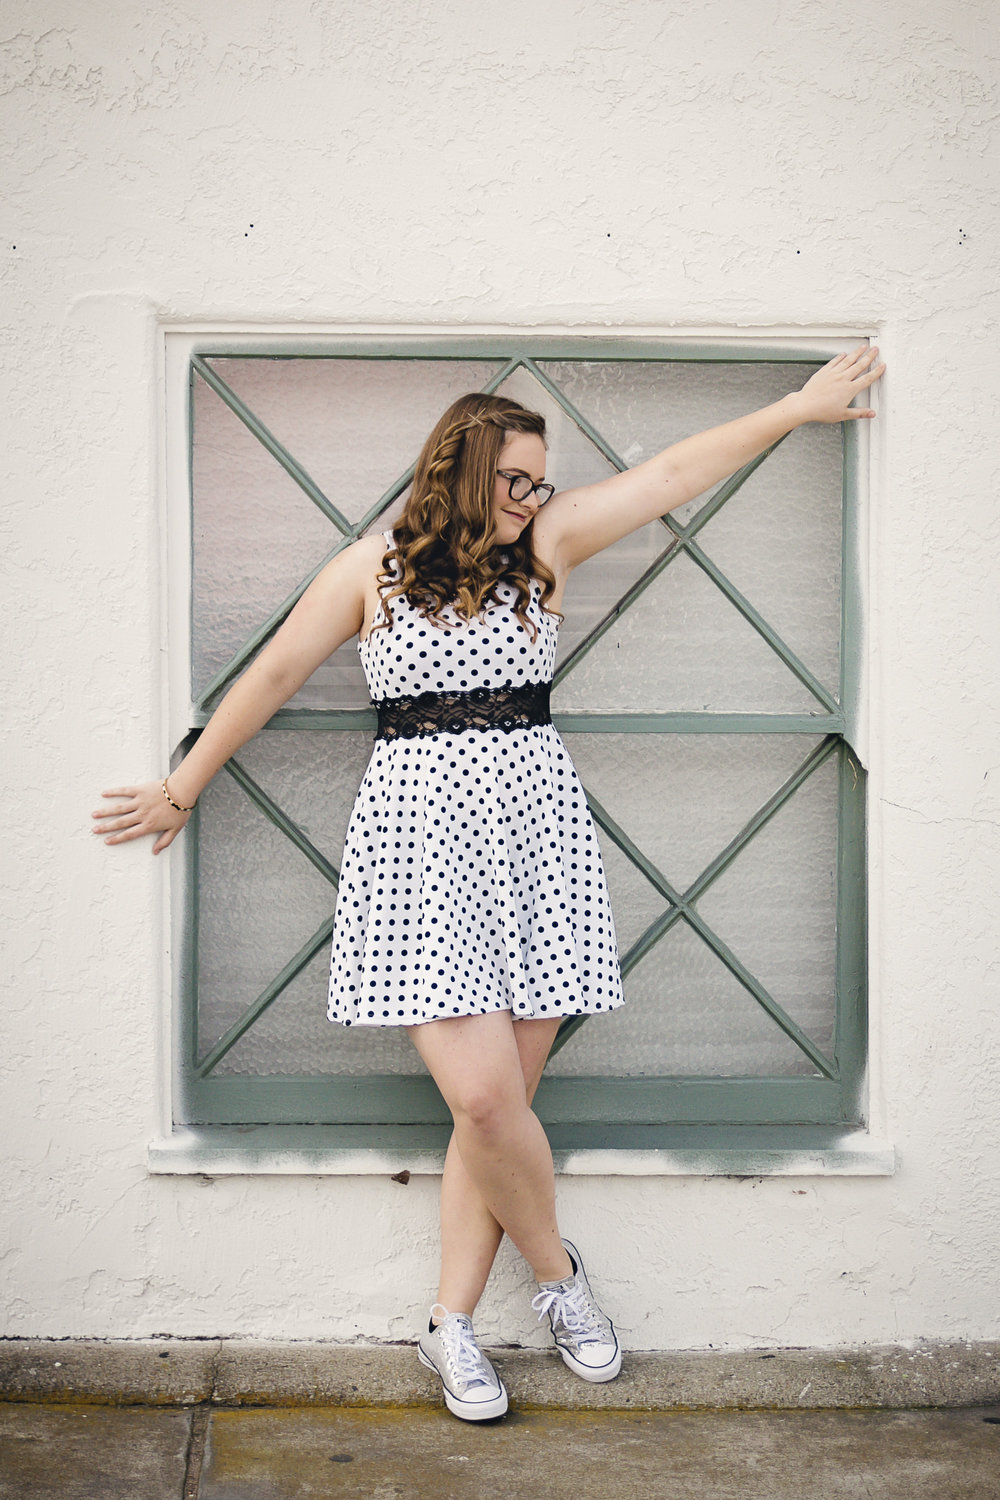 shawna-parks-photo-teen-portraits-san-diego